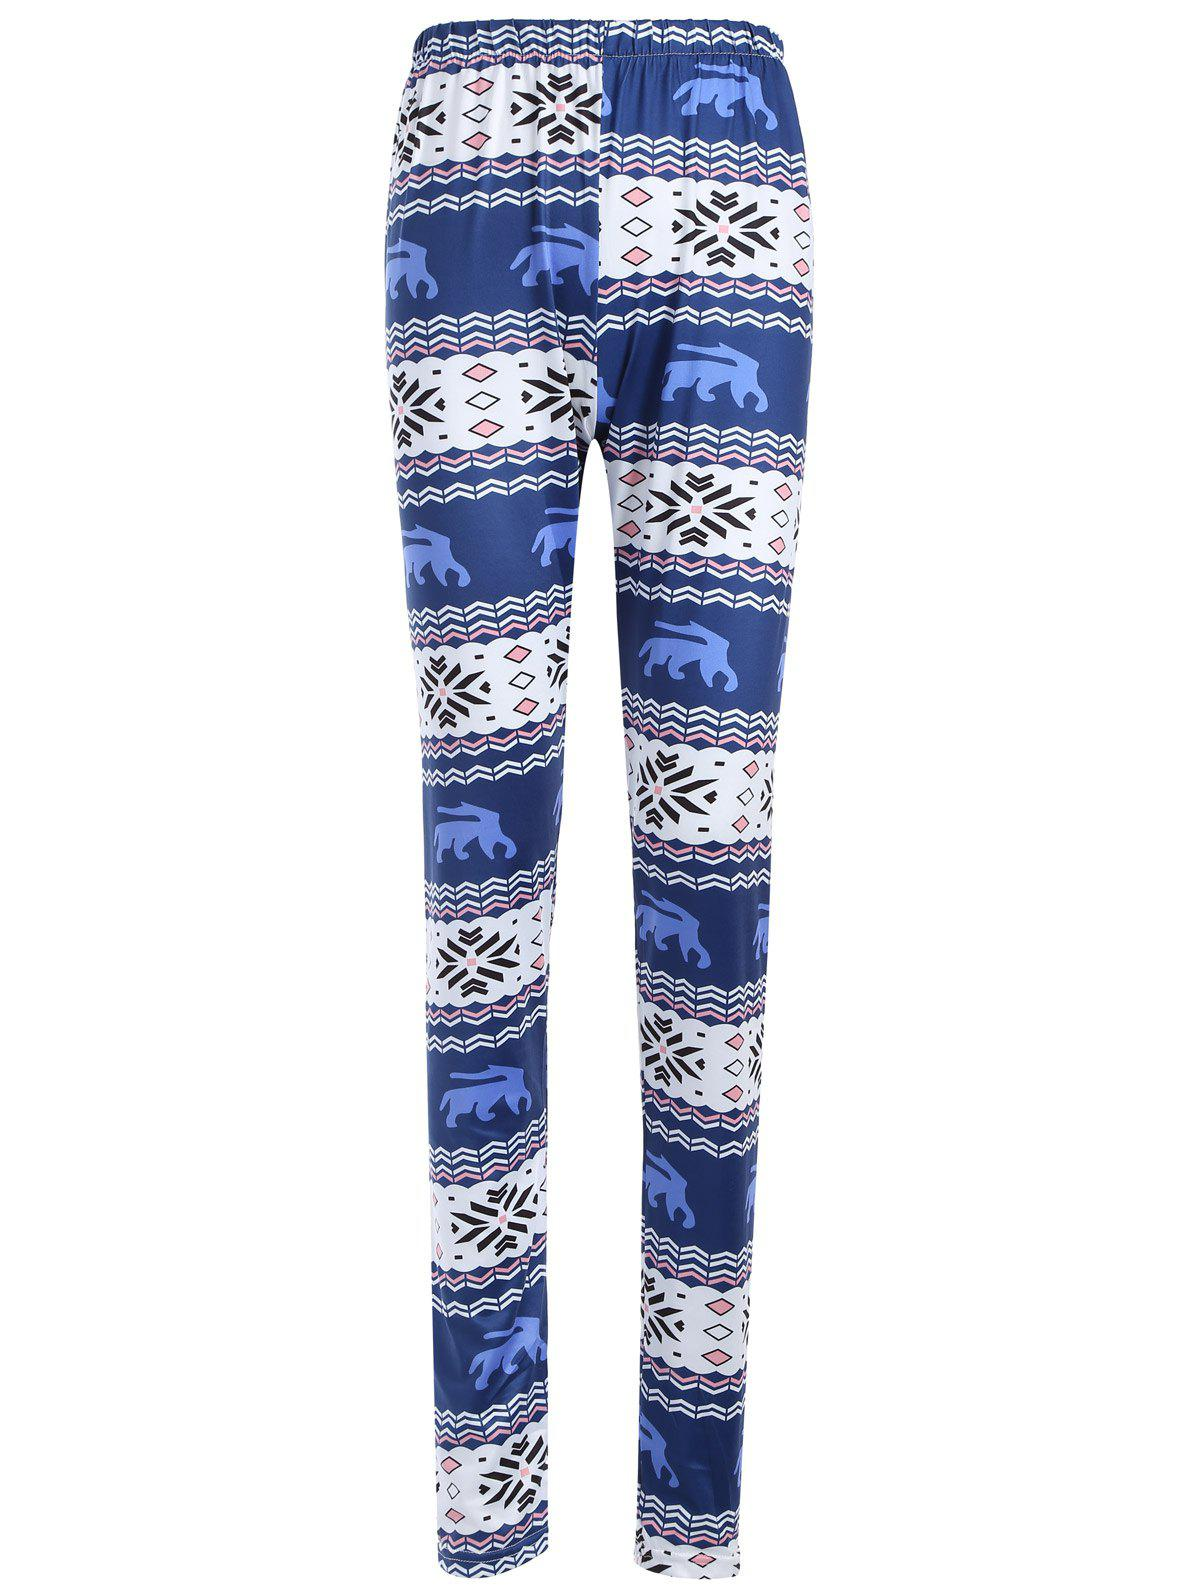 Affordable Skinny Geometric Print Christmas Leggings